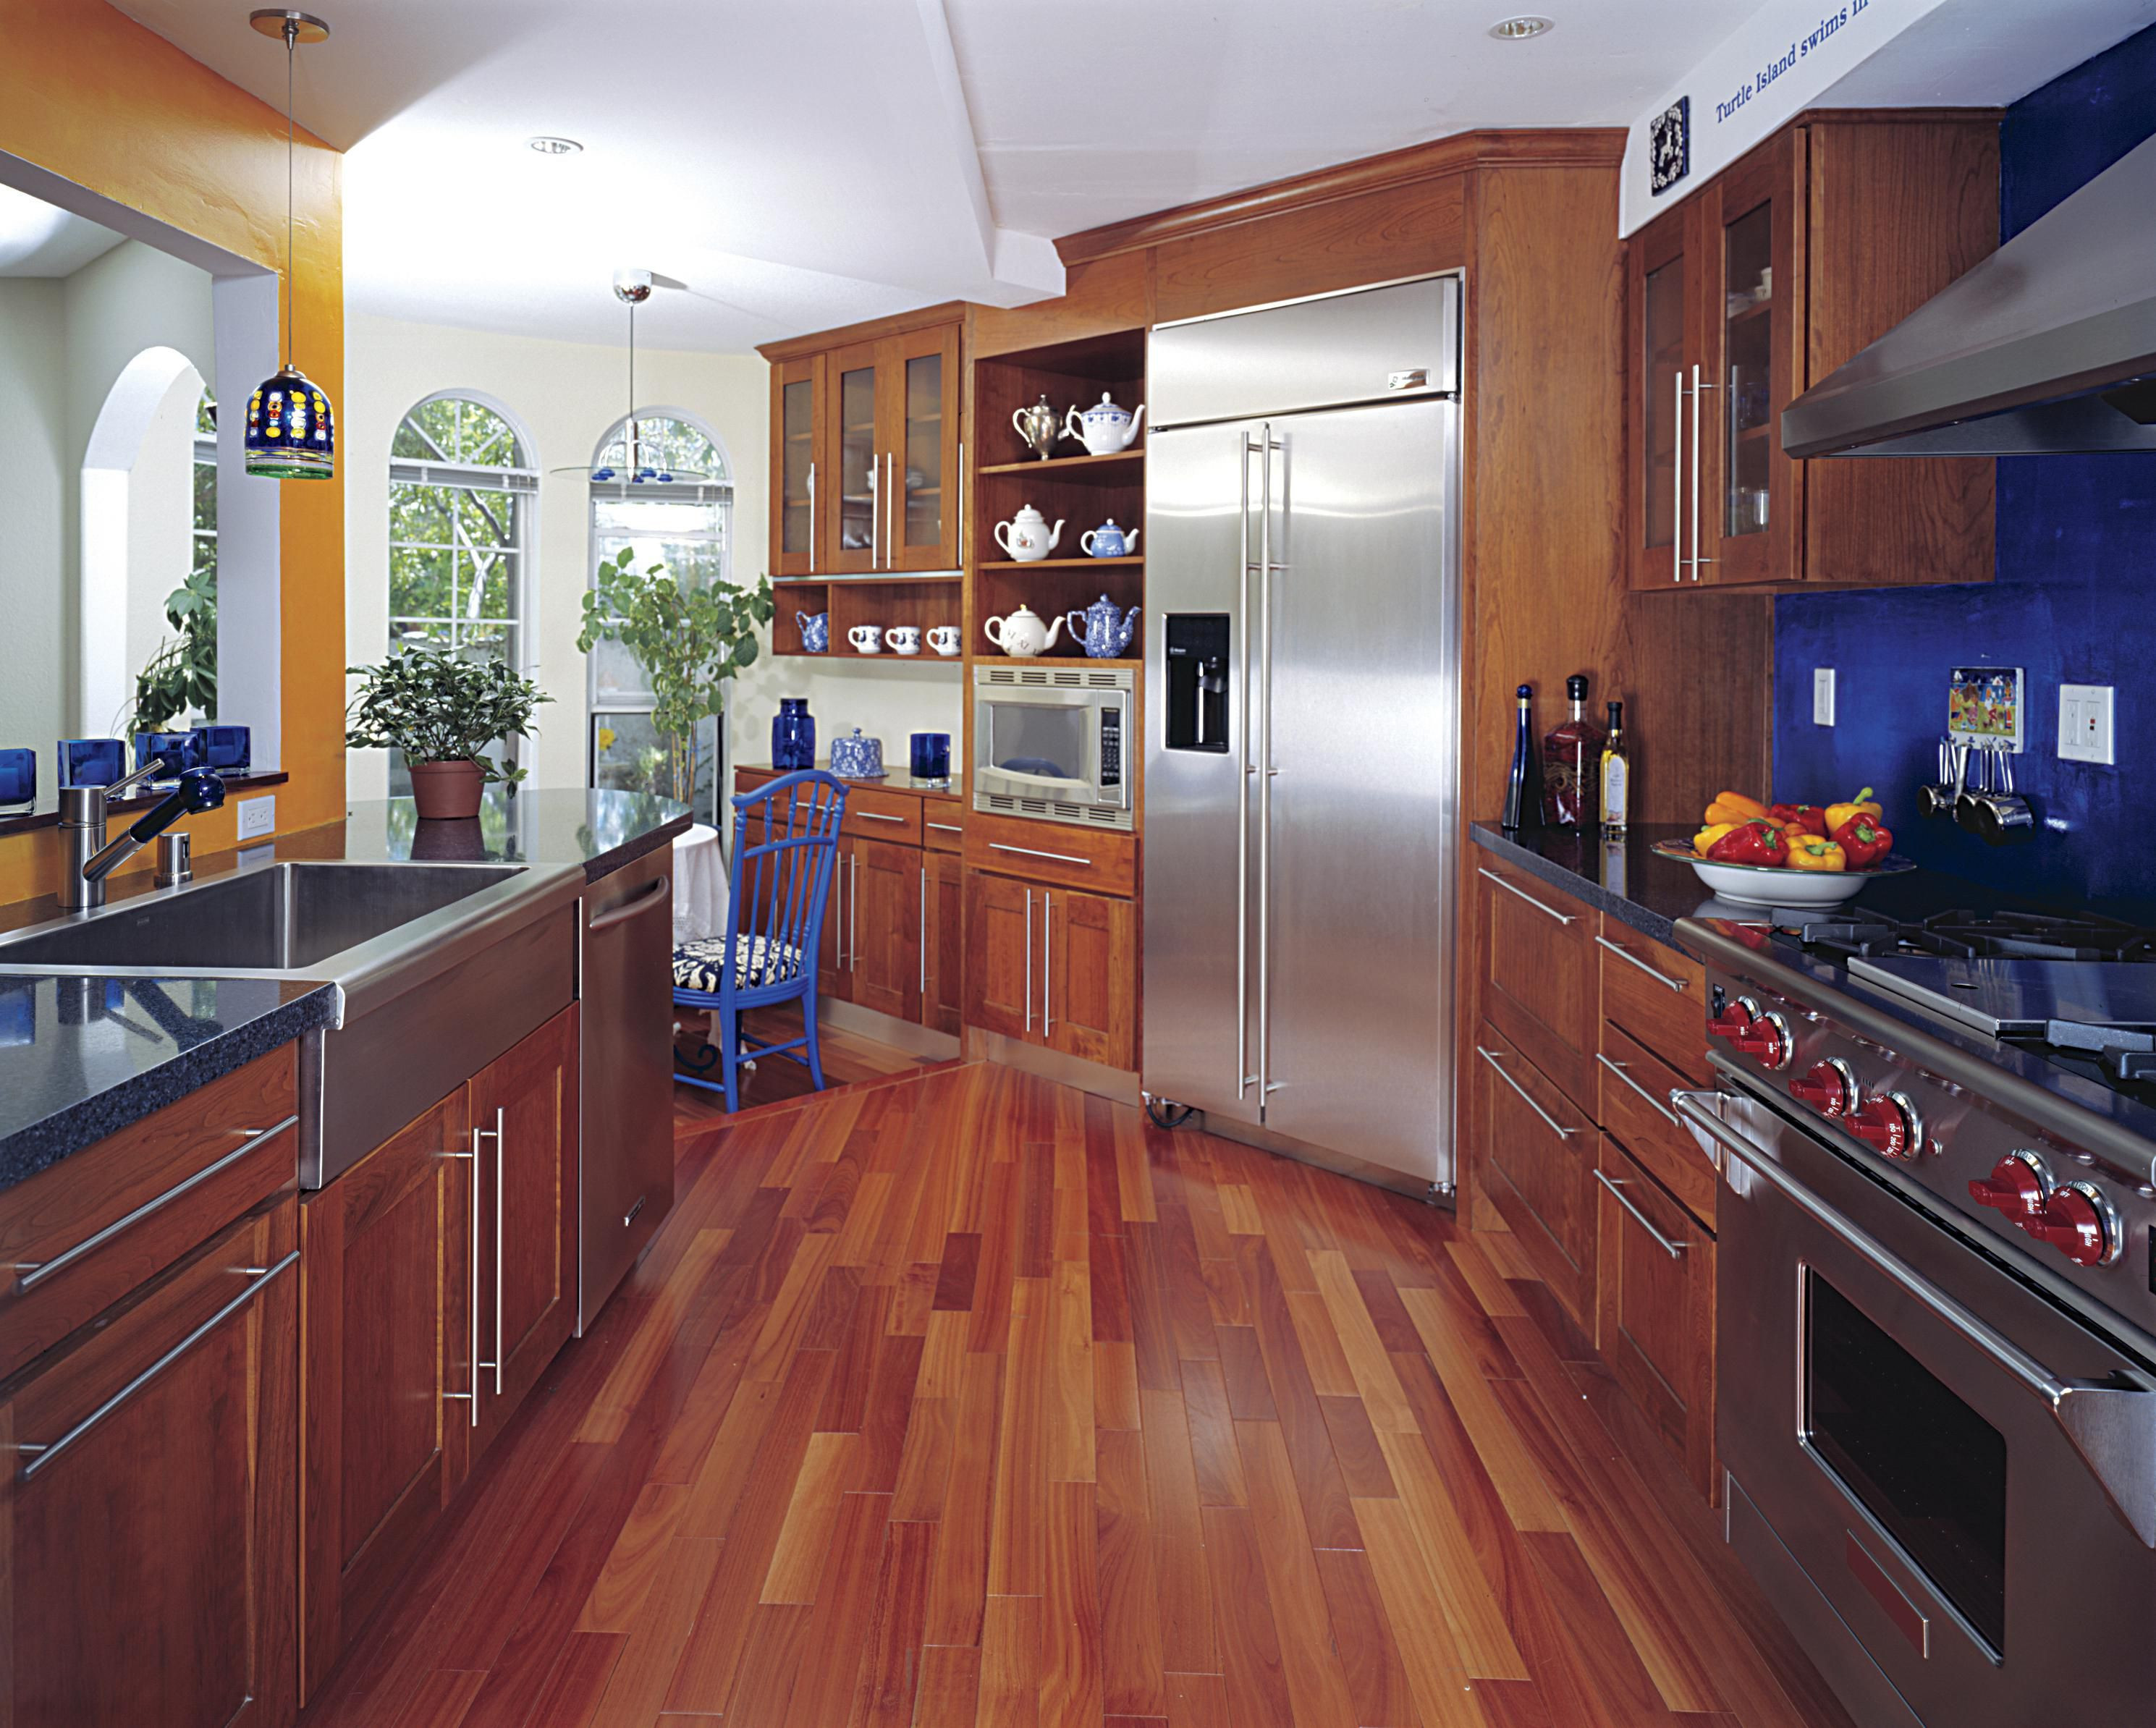 how to install hardwood flooring in a hallway of hardwood floor in a kitchen is this allowed inside 186828472 56a49f3a5f9b58b7d0d7e142